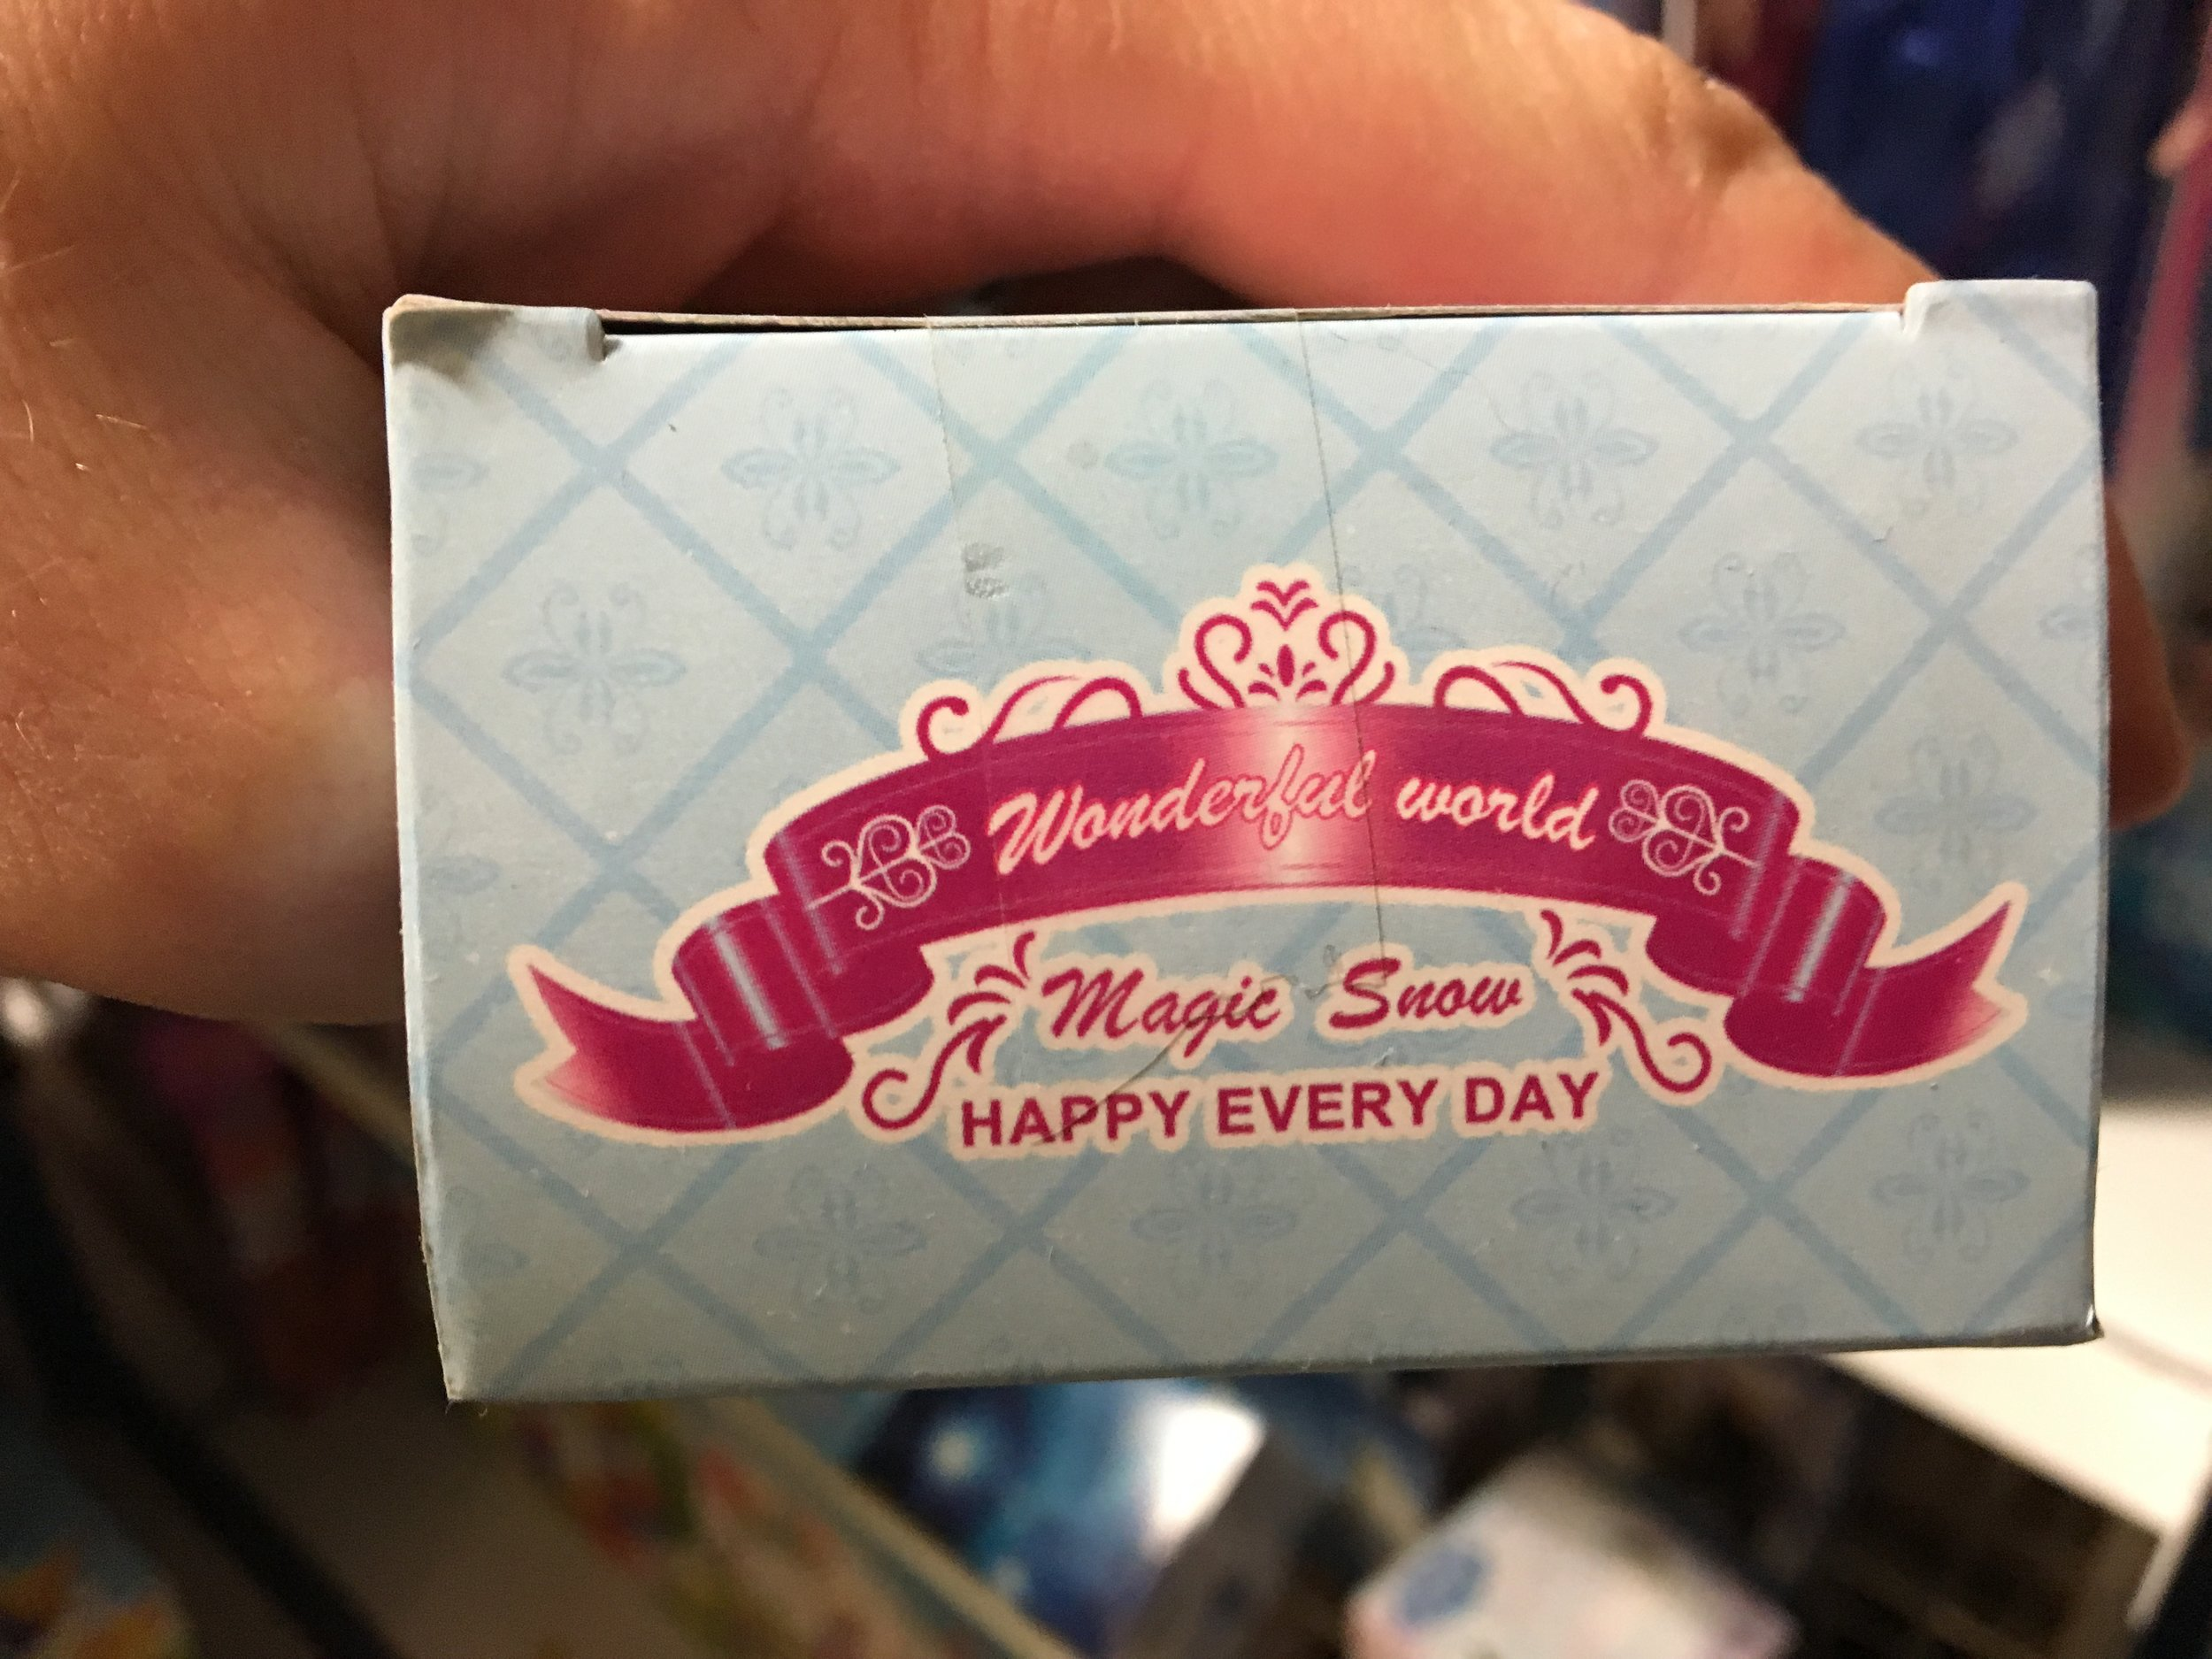 Bold claims from Wonderful World Magic Snow... HAPPY EVERY DAY!